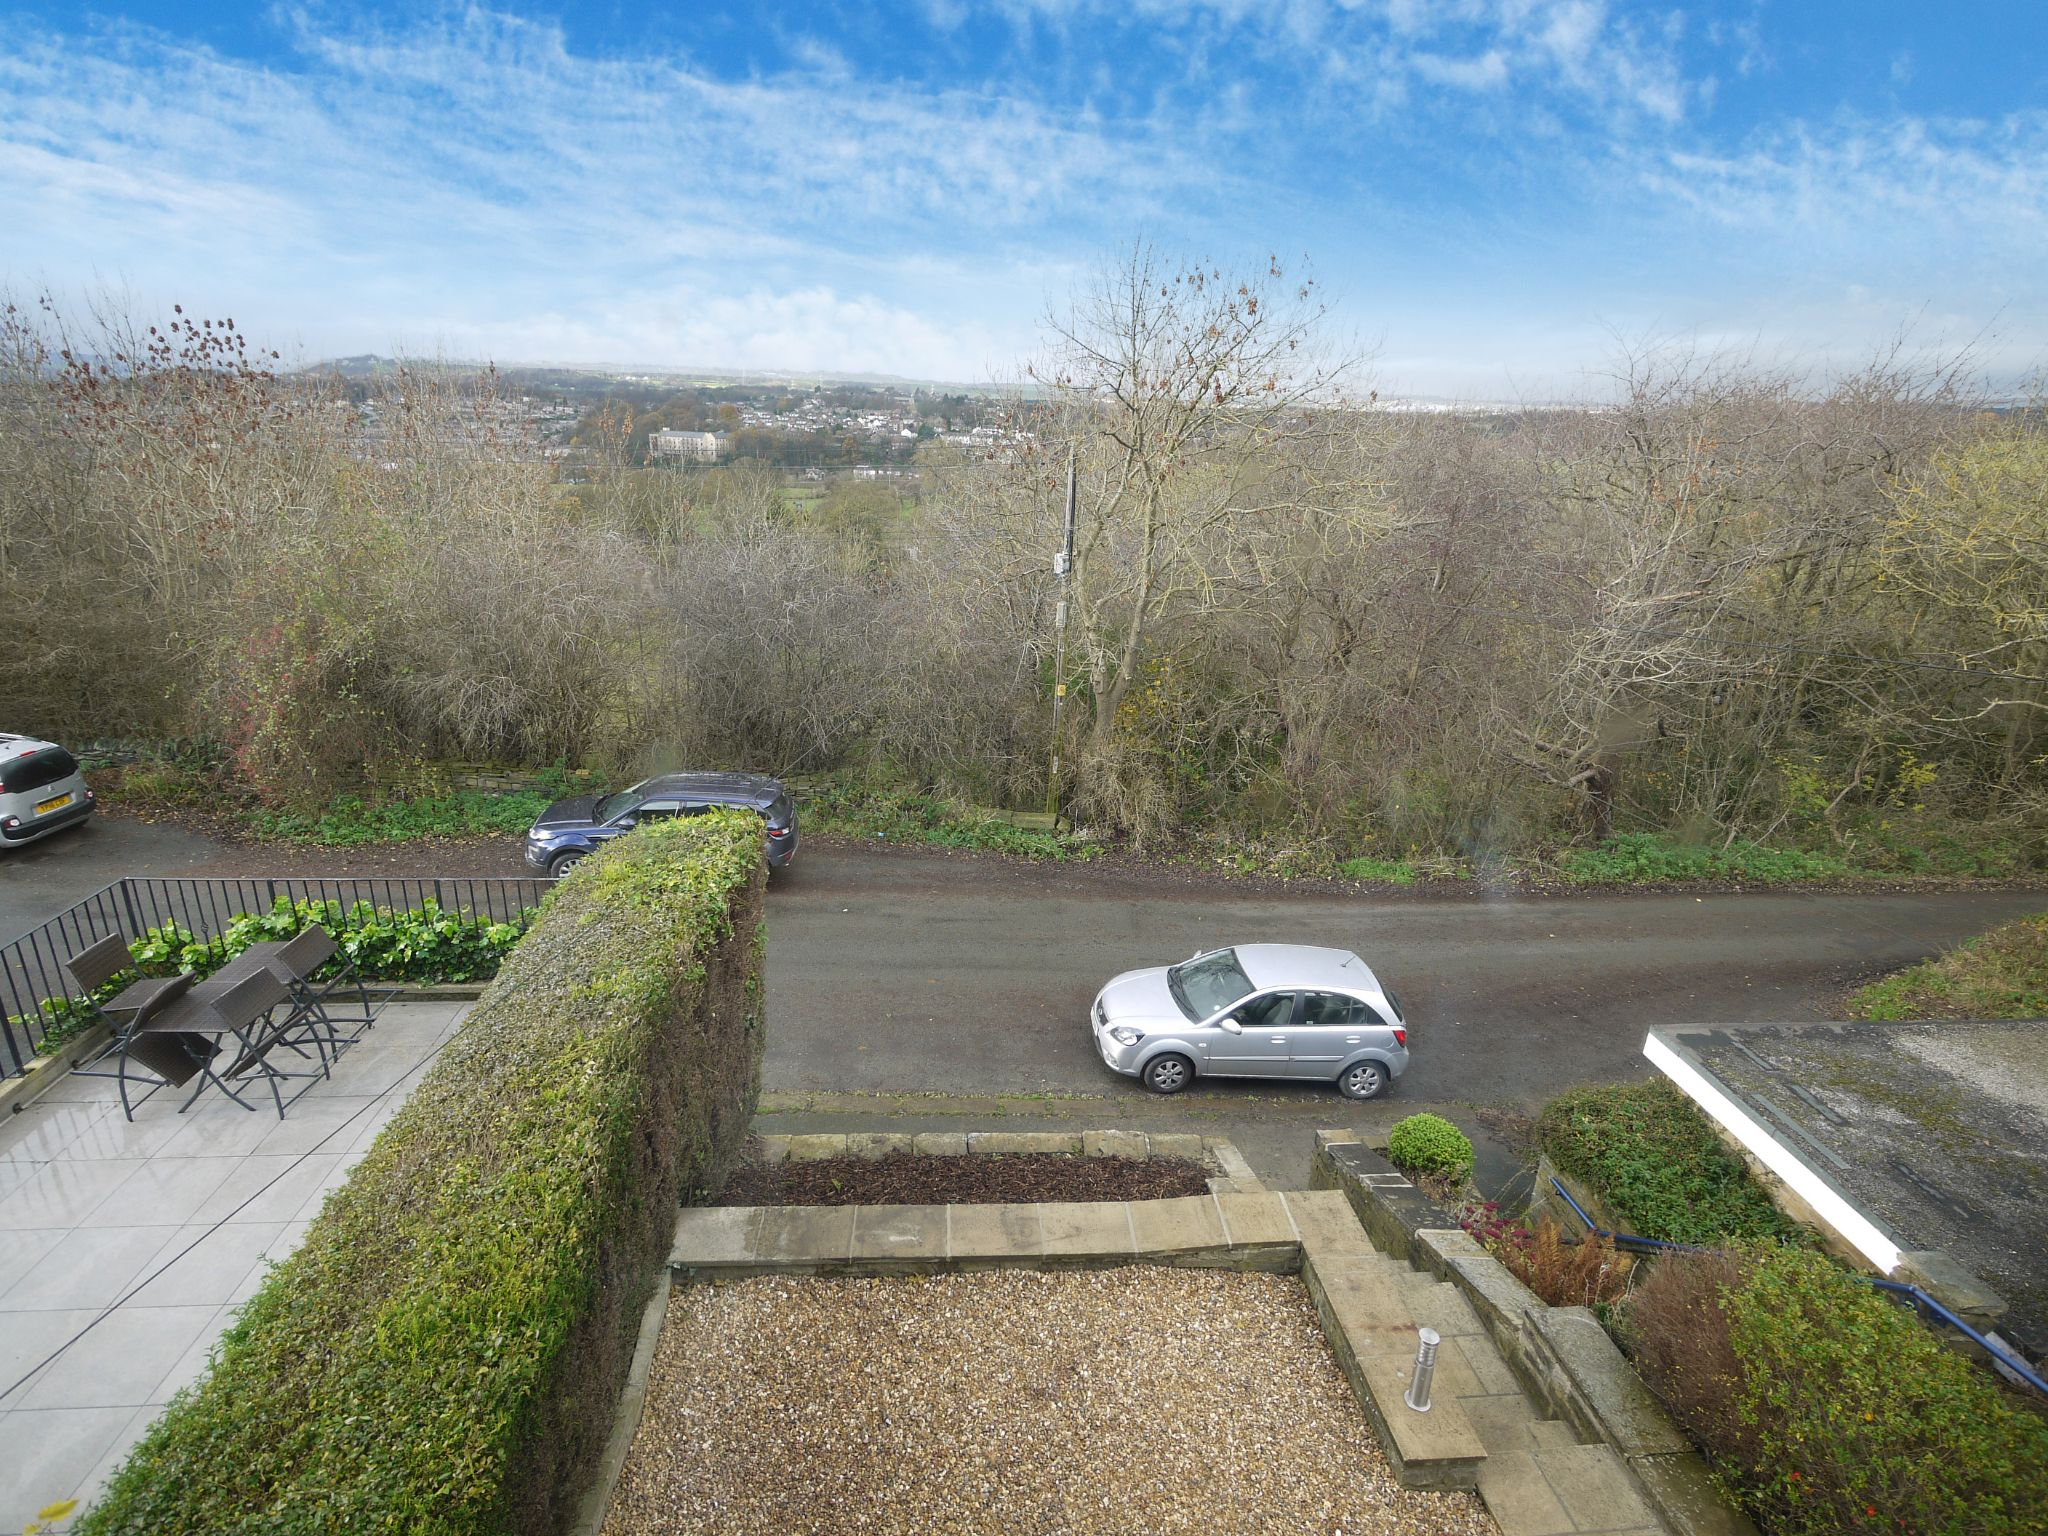 3 bedroom end terraced house SSTC in Brighouse - View from front.